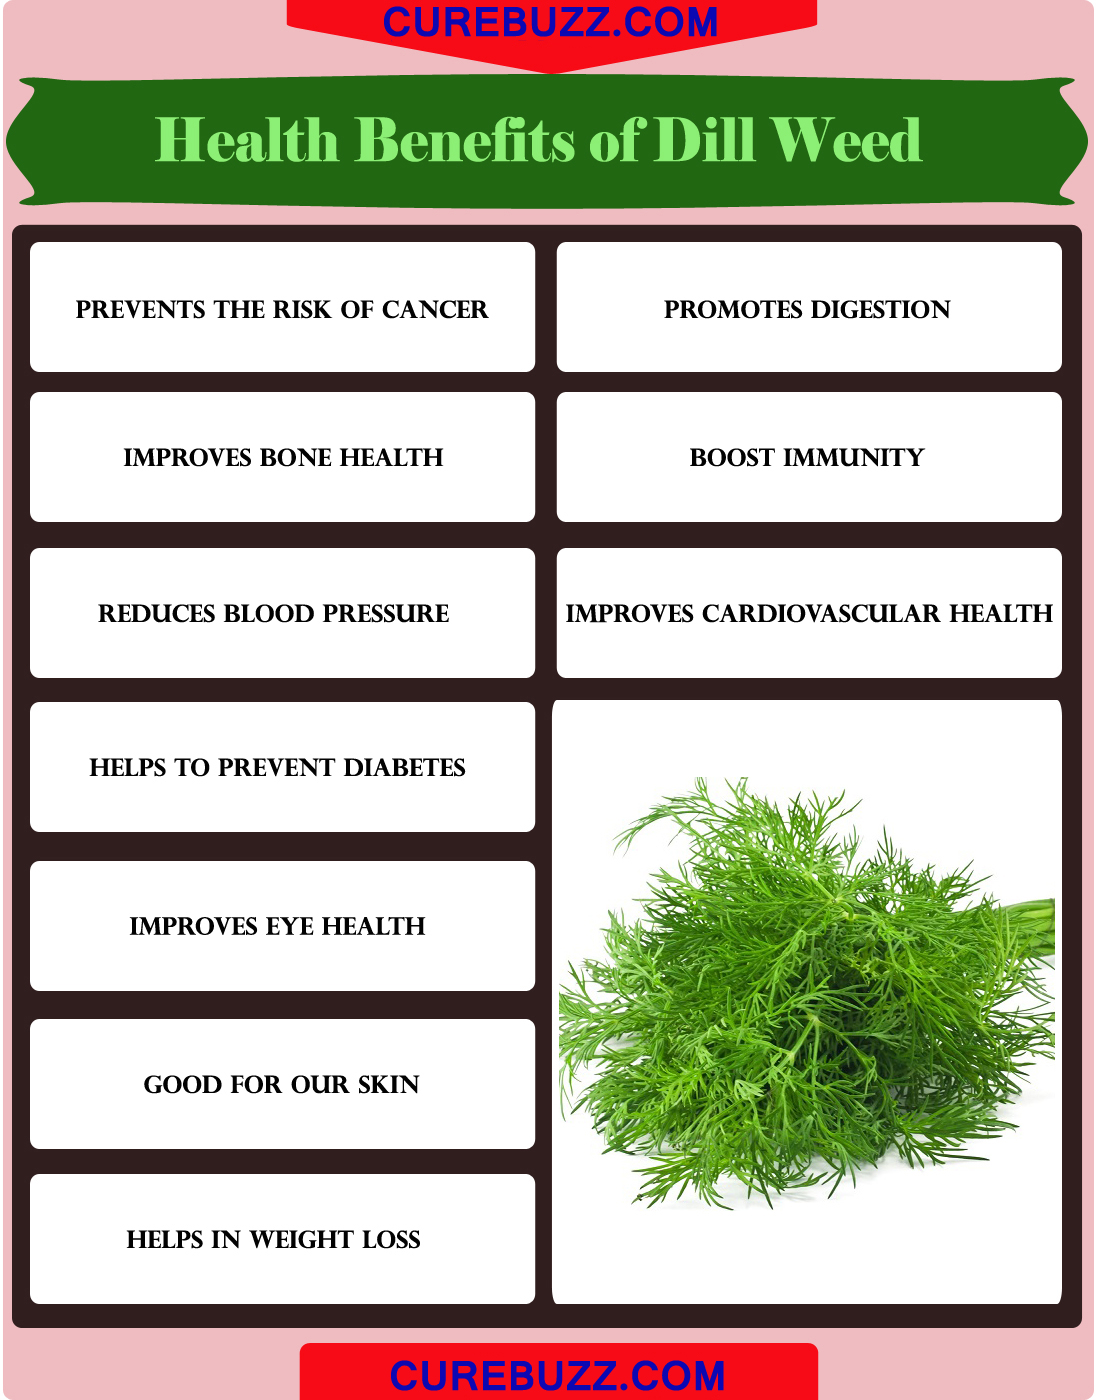 Health Benefits of Dill weed